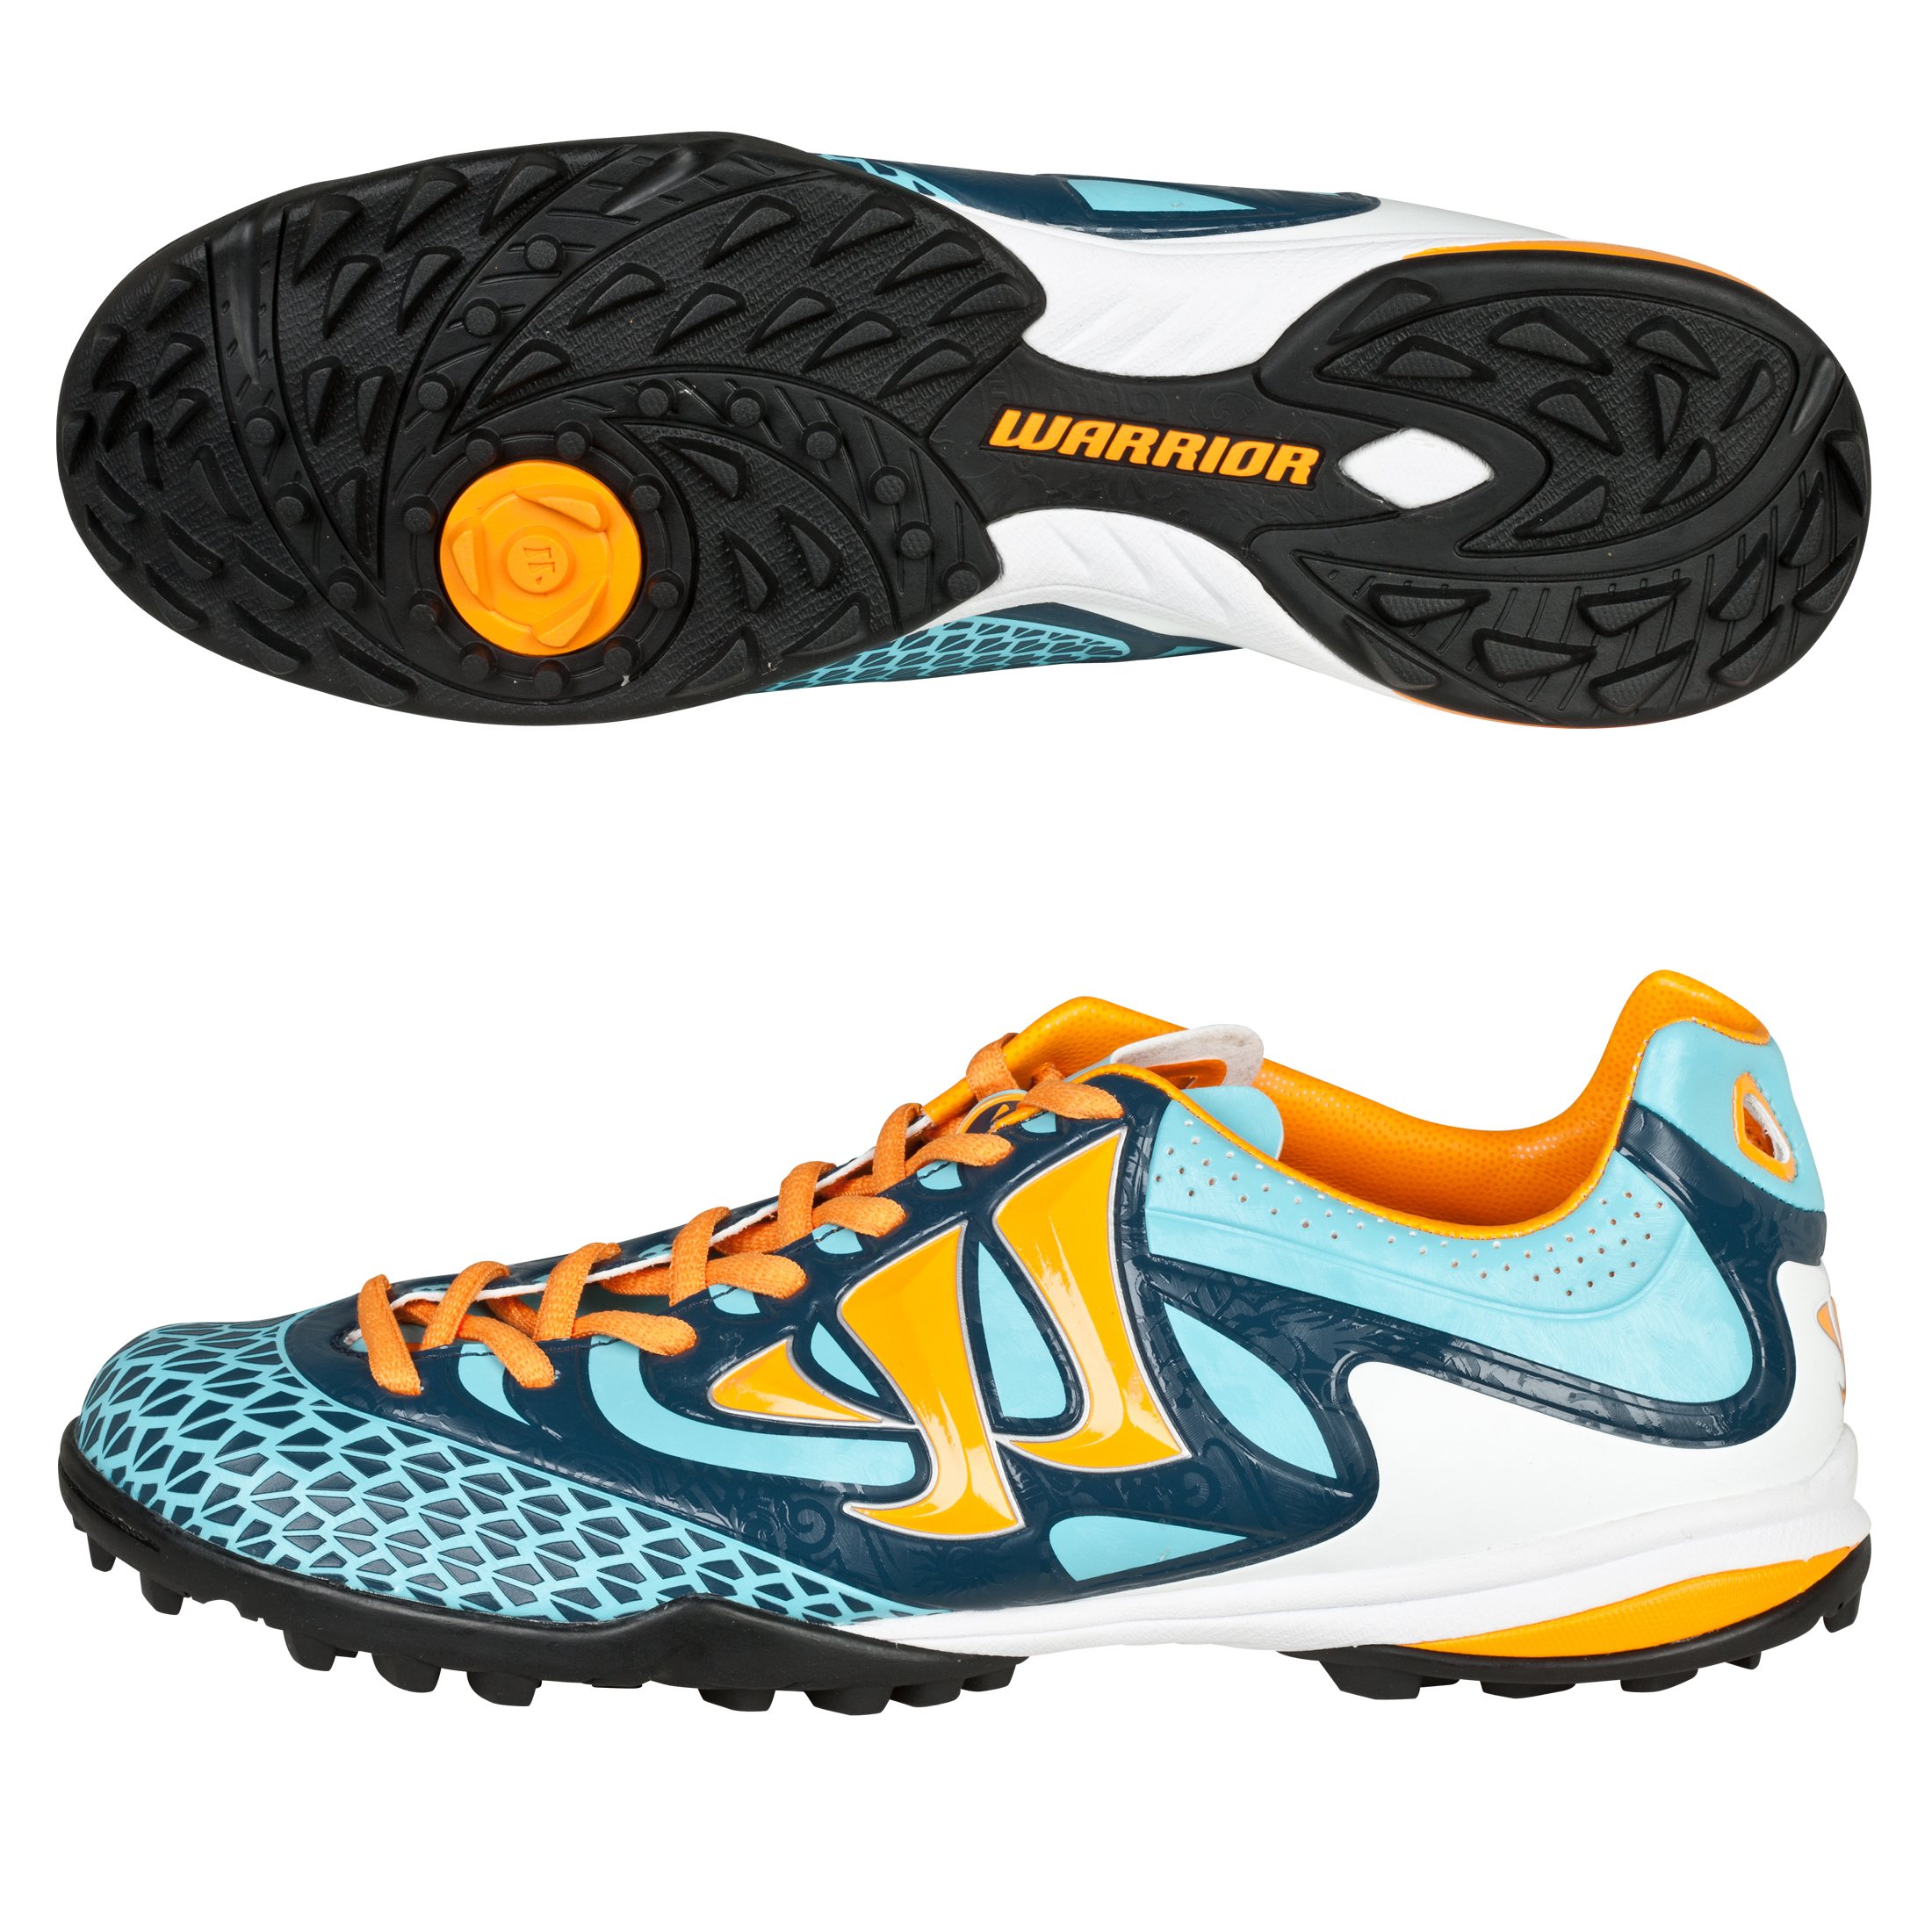 Warrior Sports Skreamer Combat Astroturf Trainers - Blue Radiance/Bright Marigold/Insignia Blue